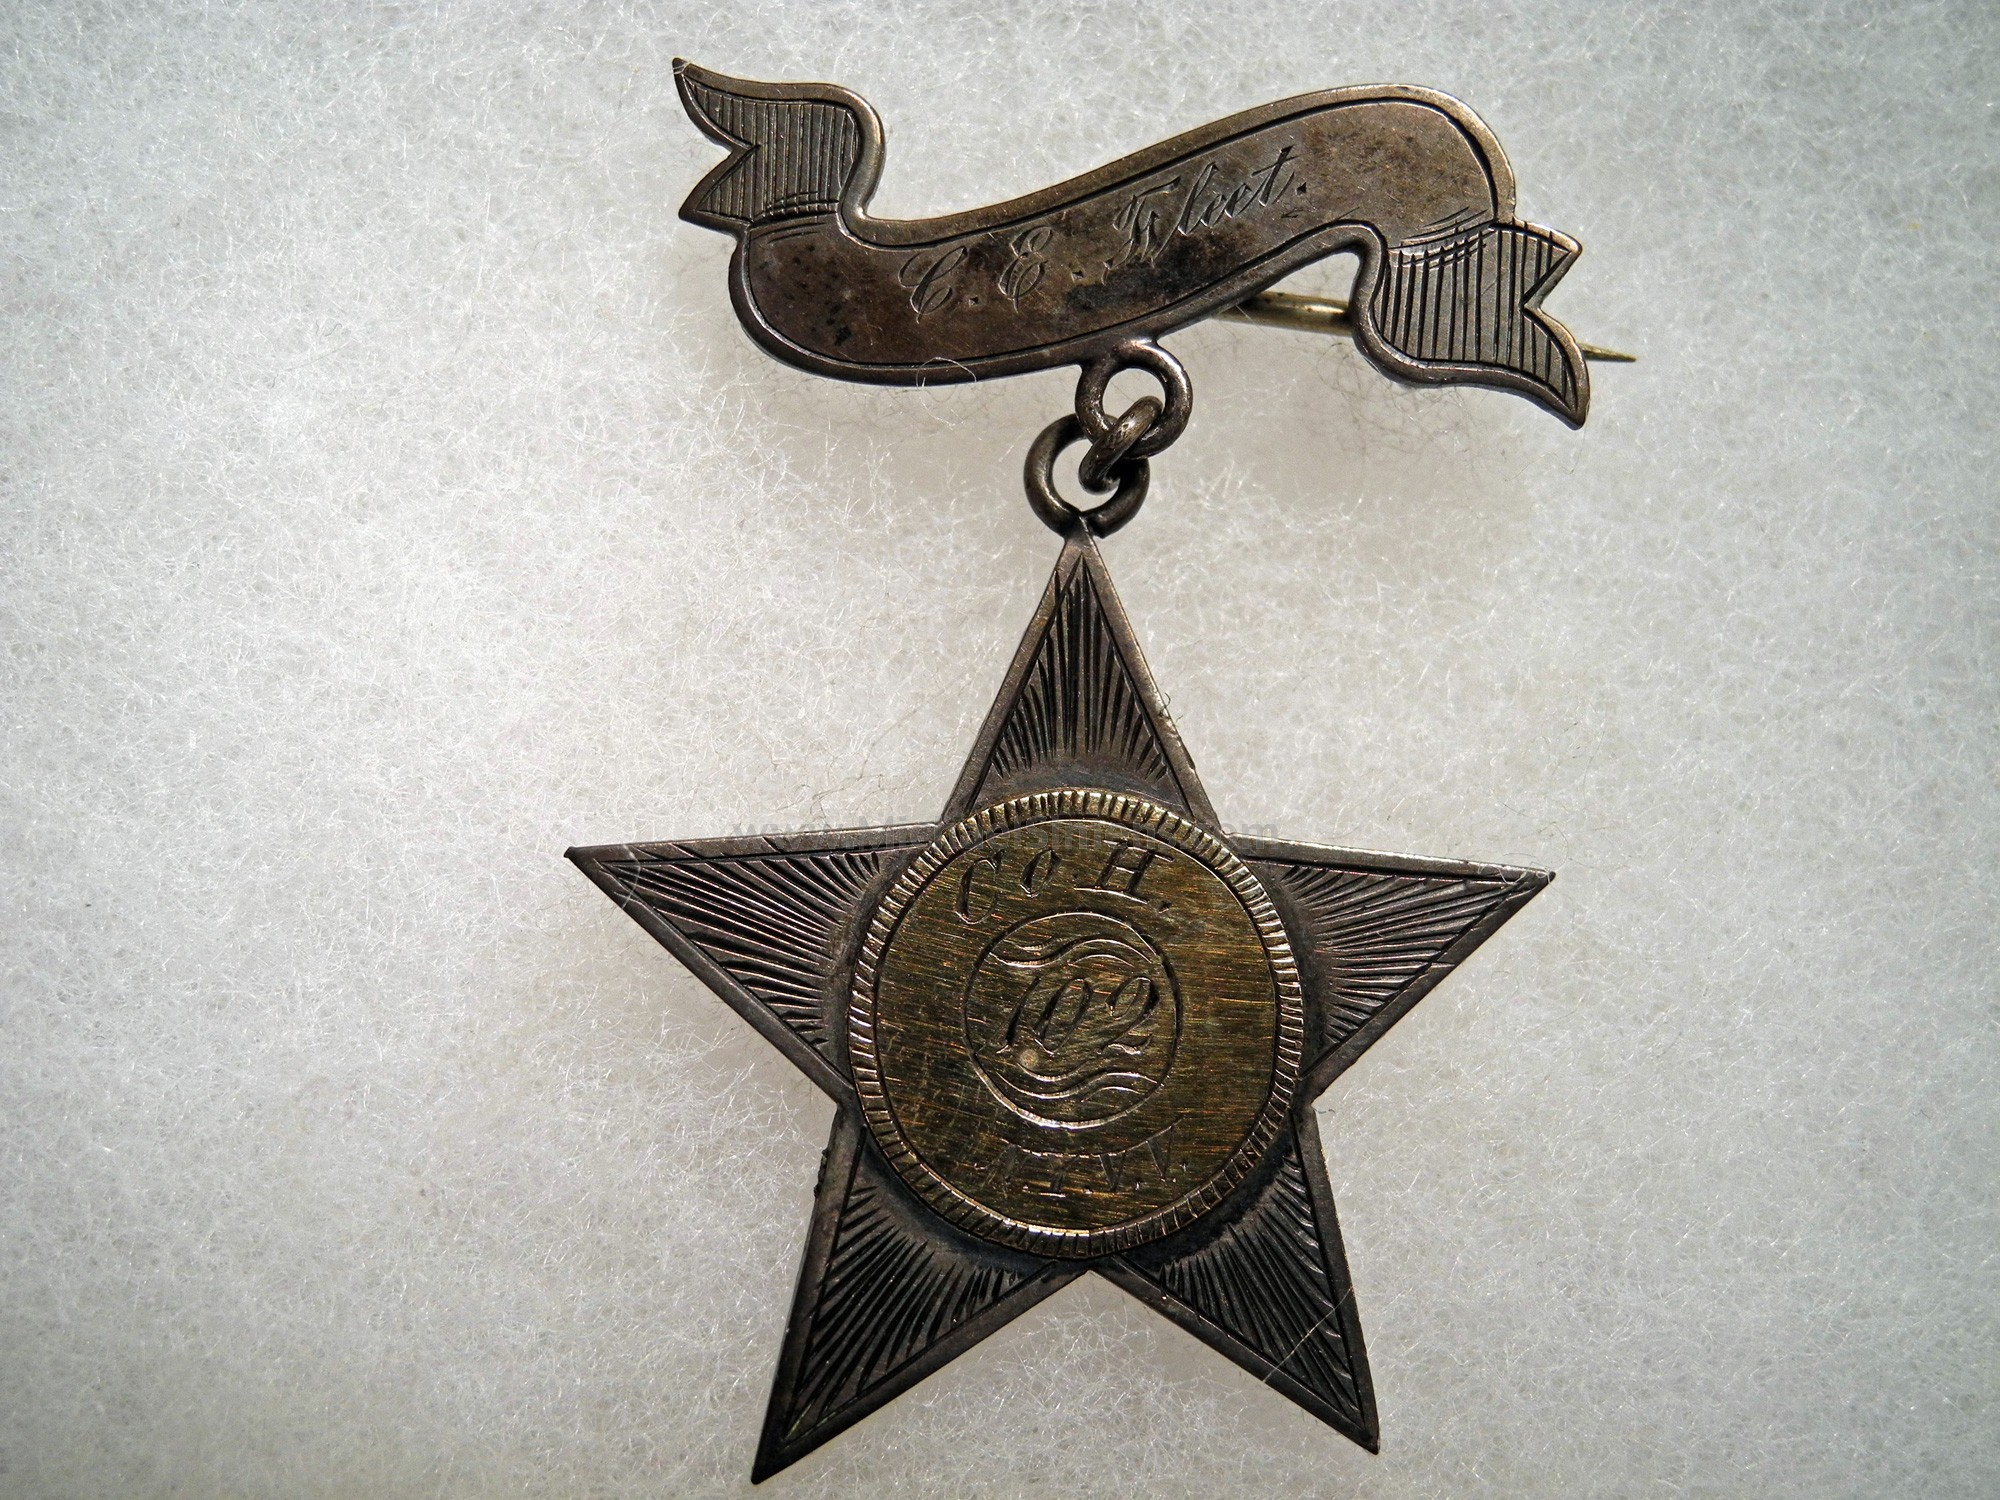 CIVIL WAR GOLD AND SILVER CORPS BADGE - 102nd NEW YORK